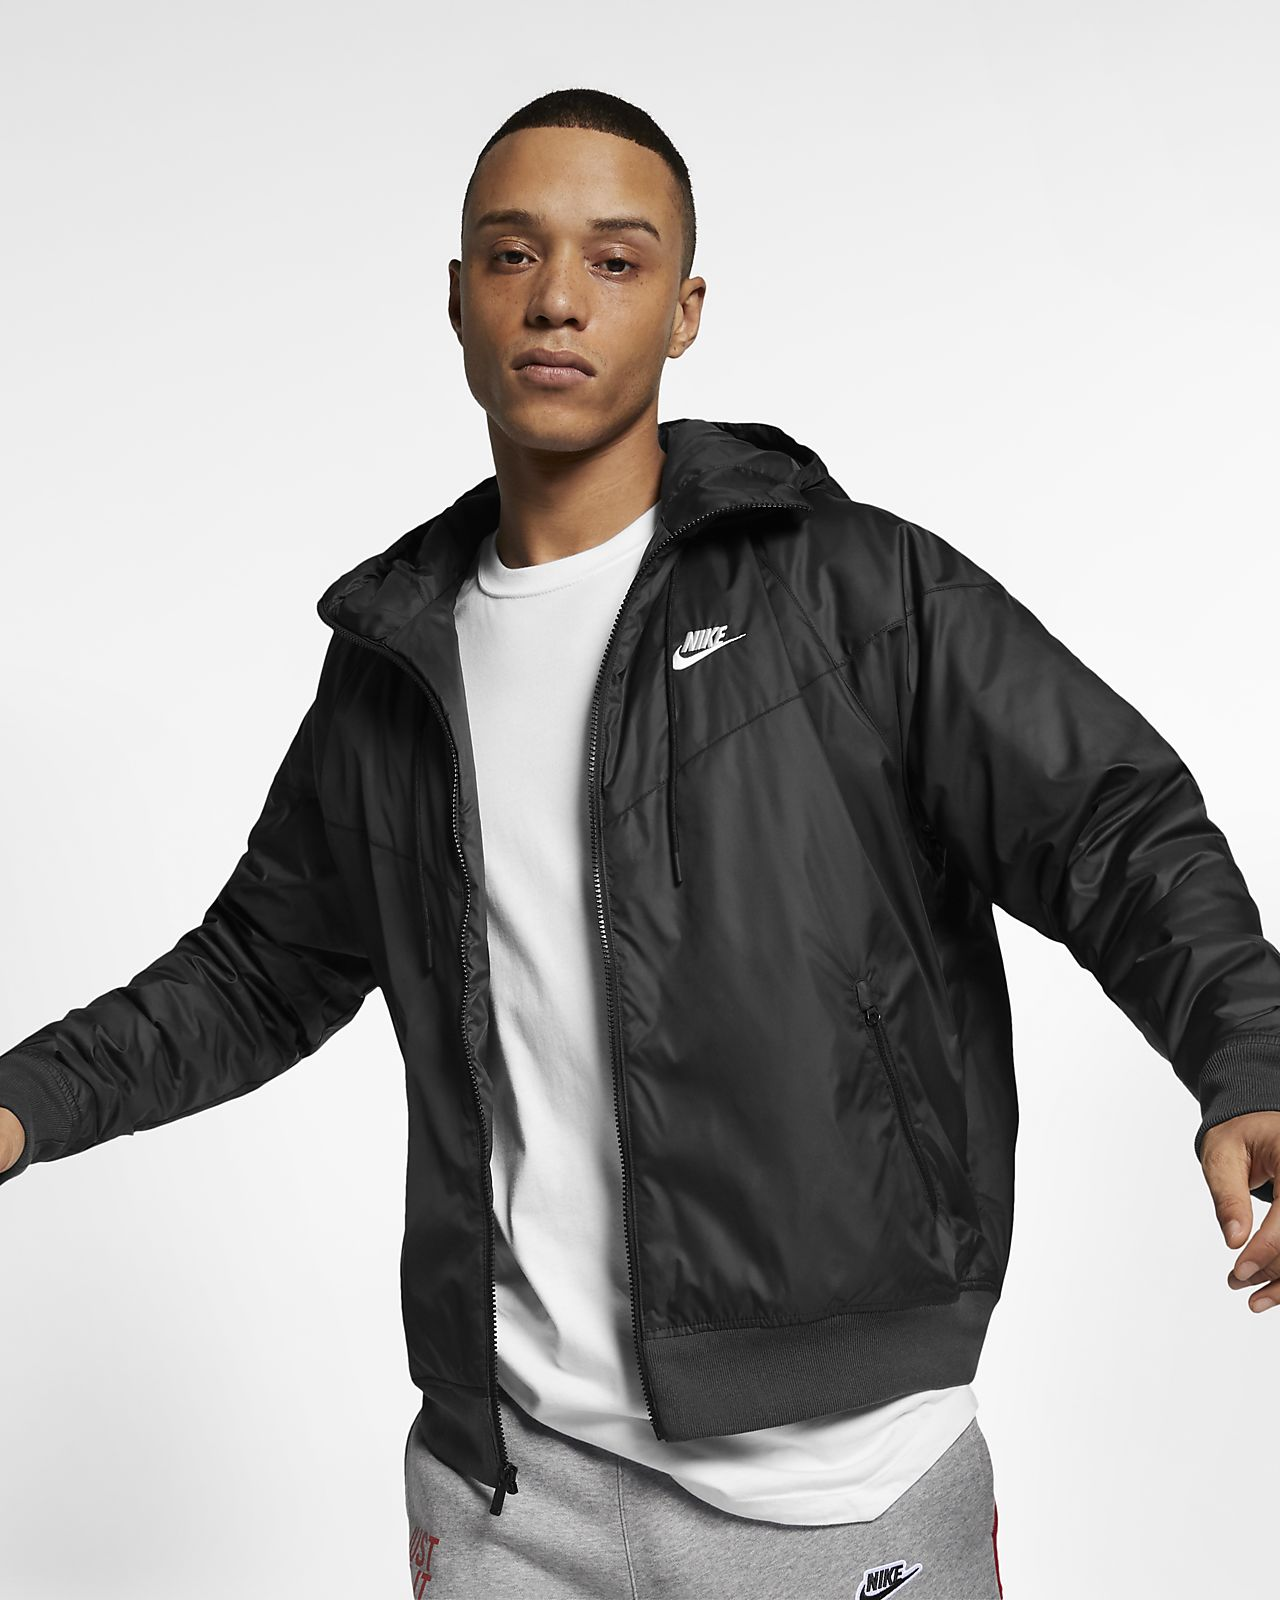 849f68dfe1 Nike Sportswear Windrunner Men s Hooded Jacket. Nike.com NL